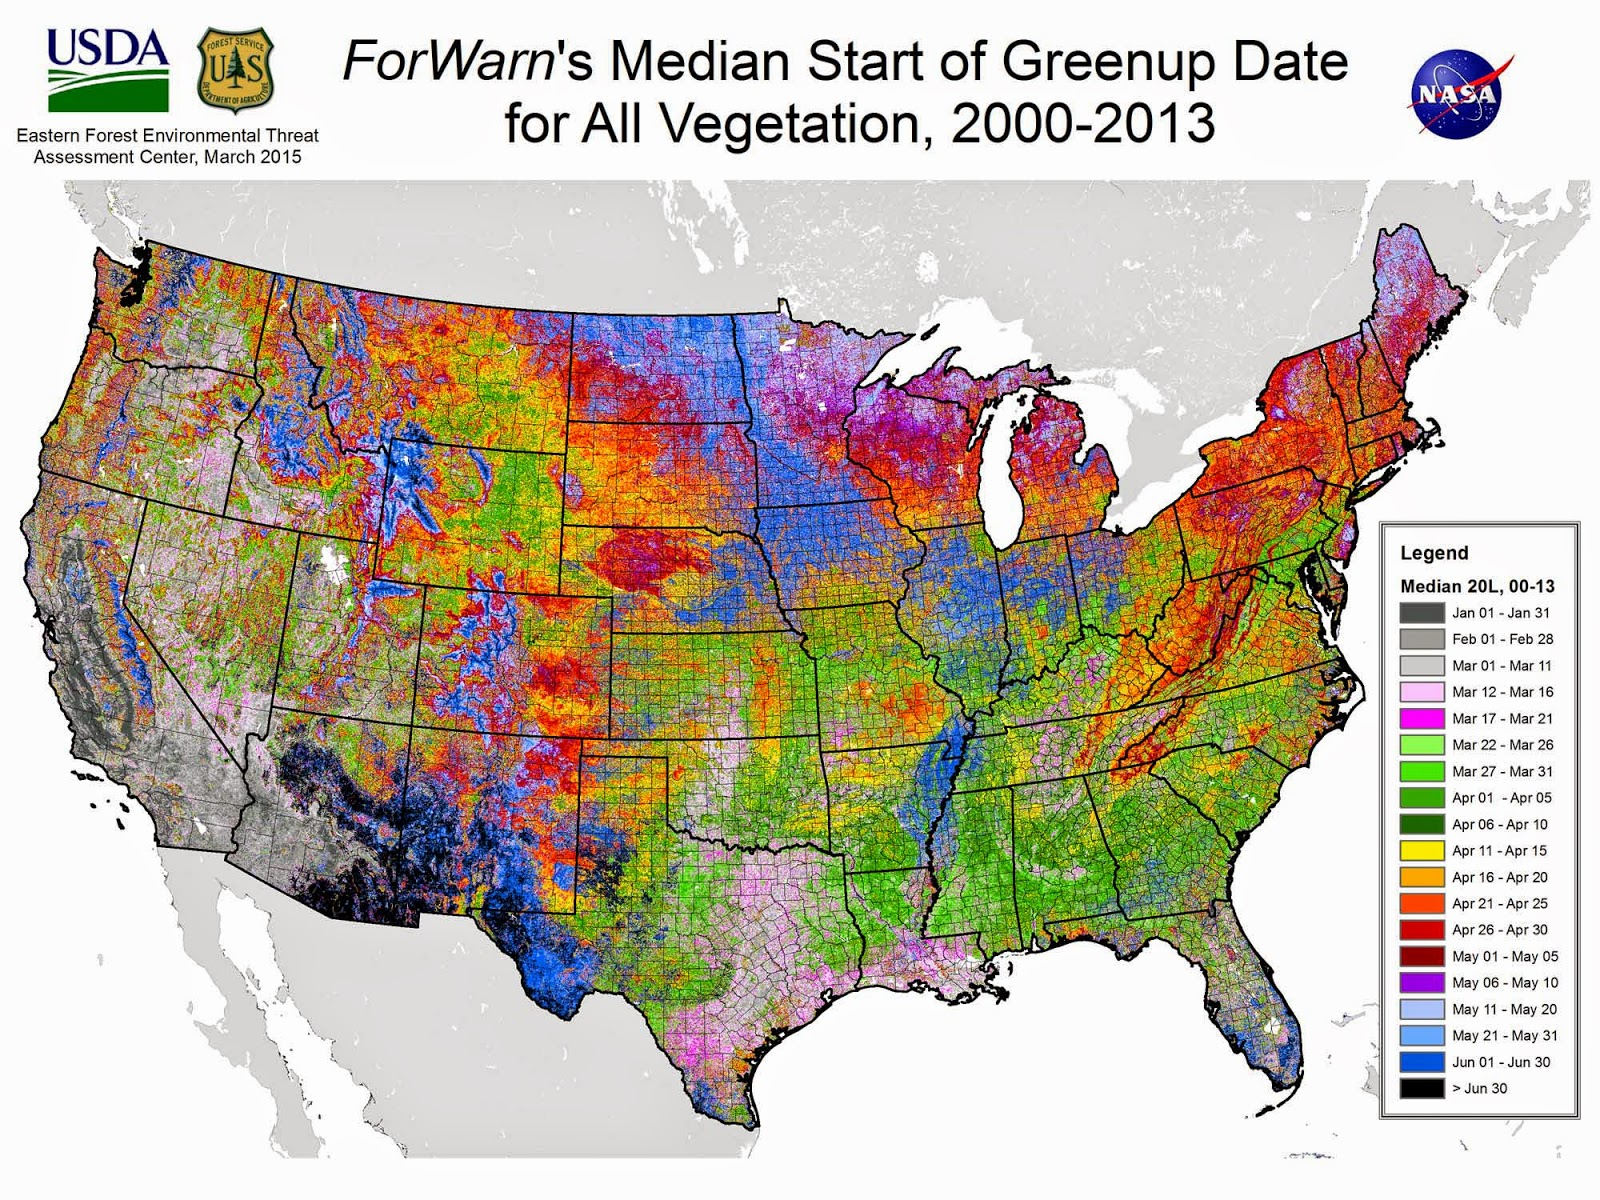 Median foliage greenup dates in the US